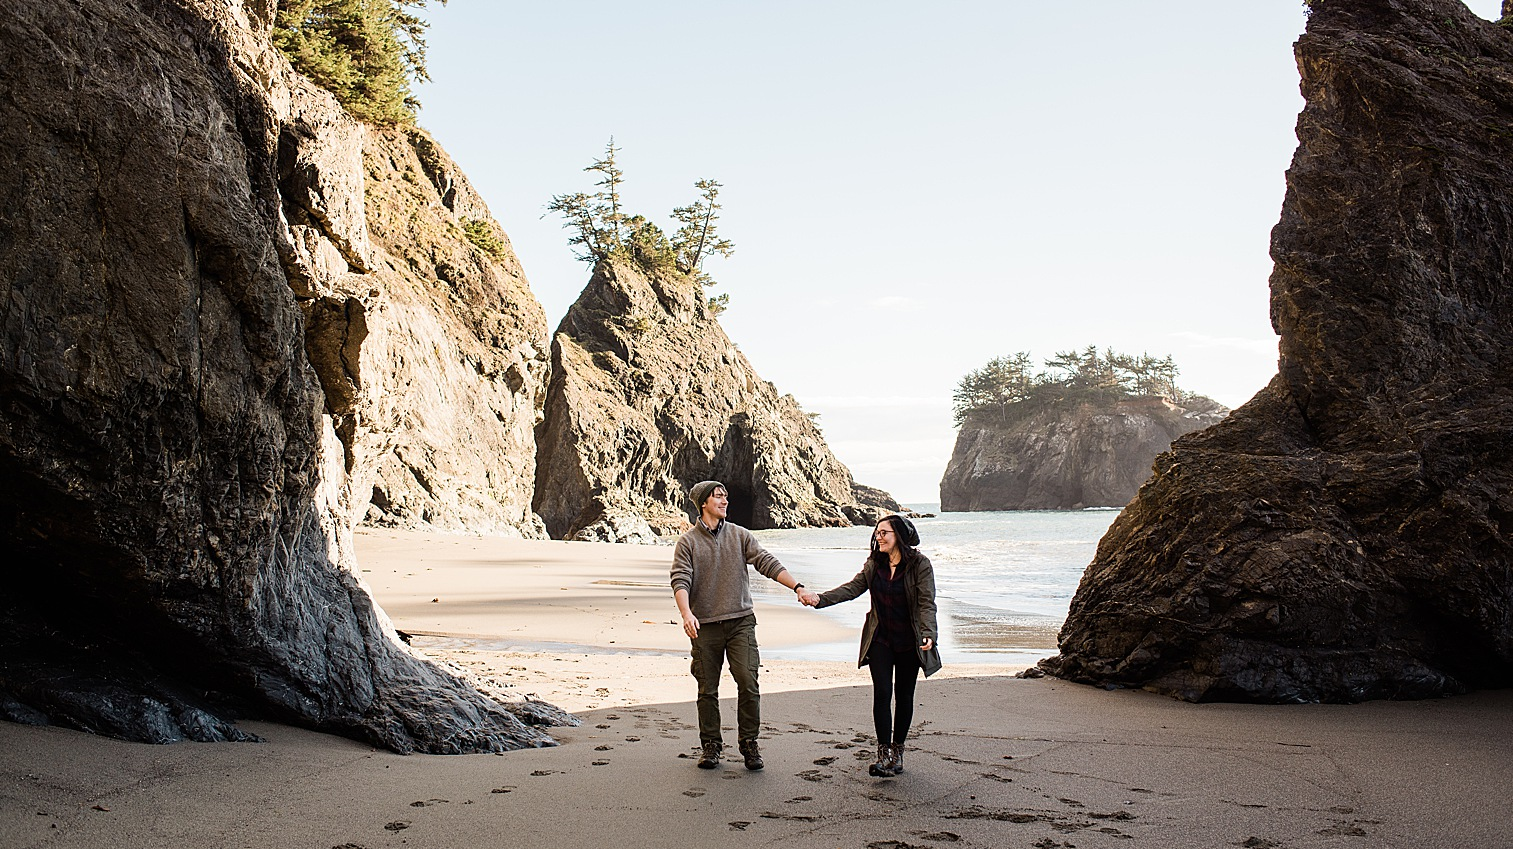 Oregon Coast Elopement Locations & Inspiration - Samuel H Boardman Scenic Corridor. Image by Forthright Photo